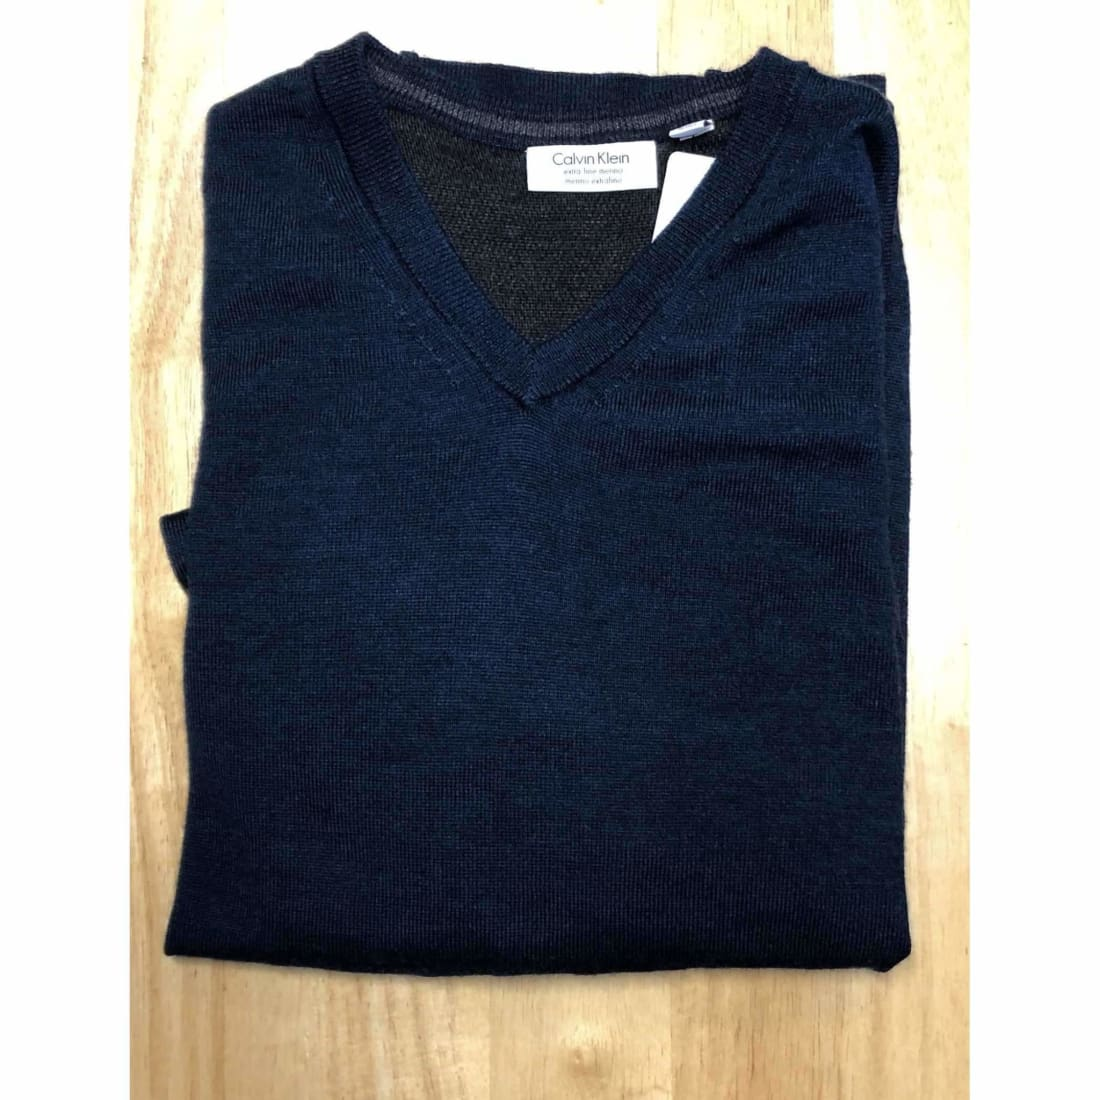 Calvin Klein Mens Merino Wool V-Neck Sweater M / Blue Sweaters